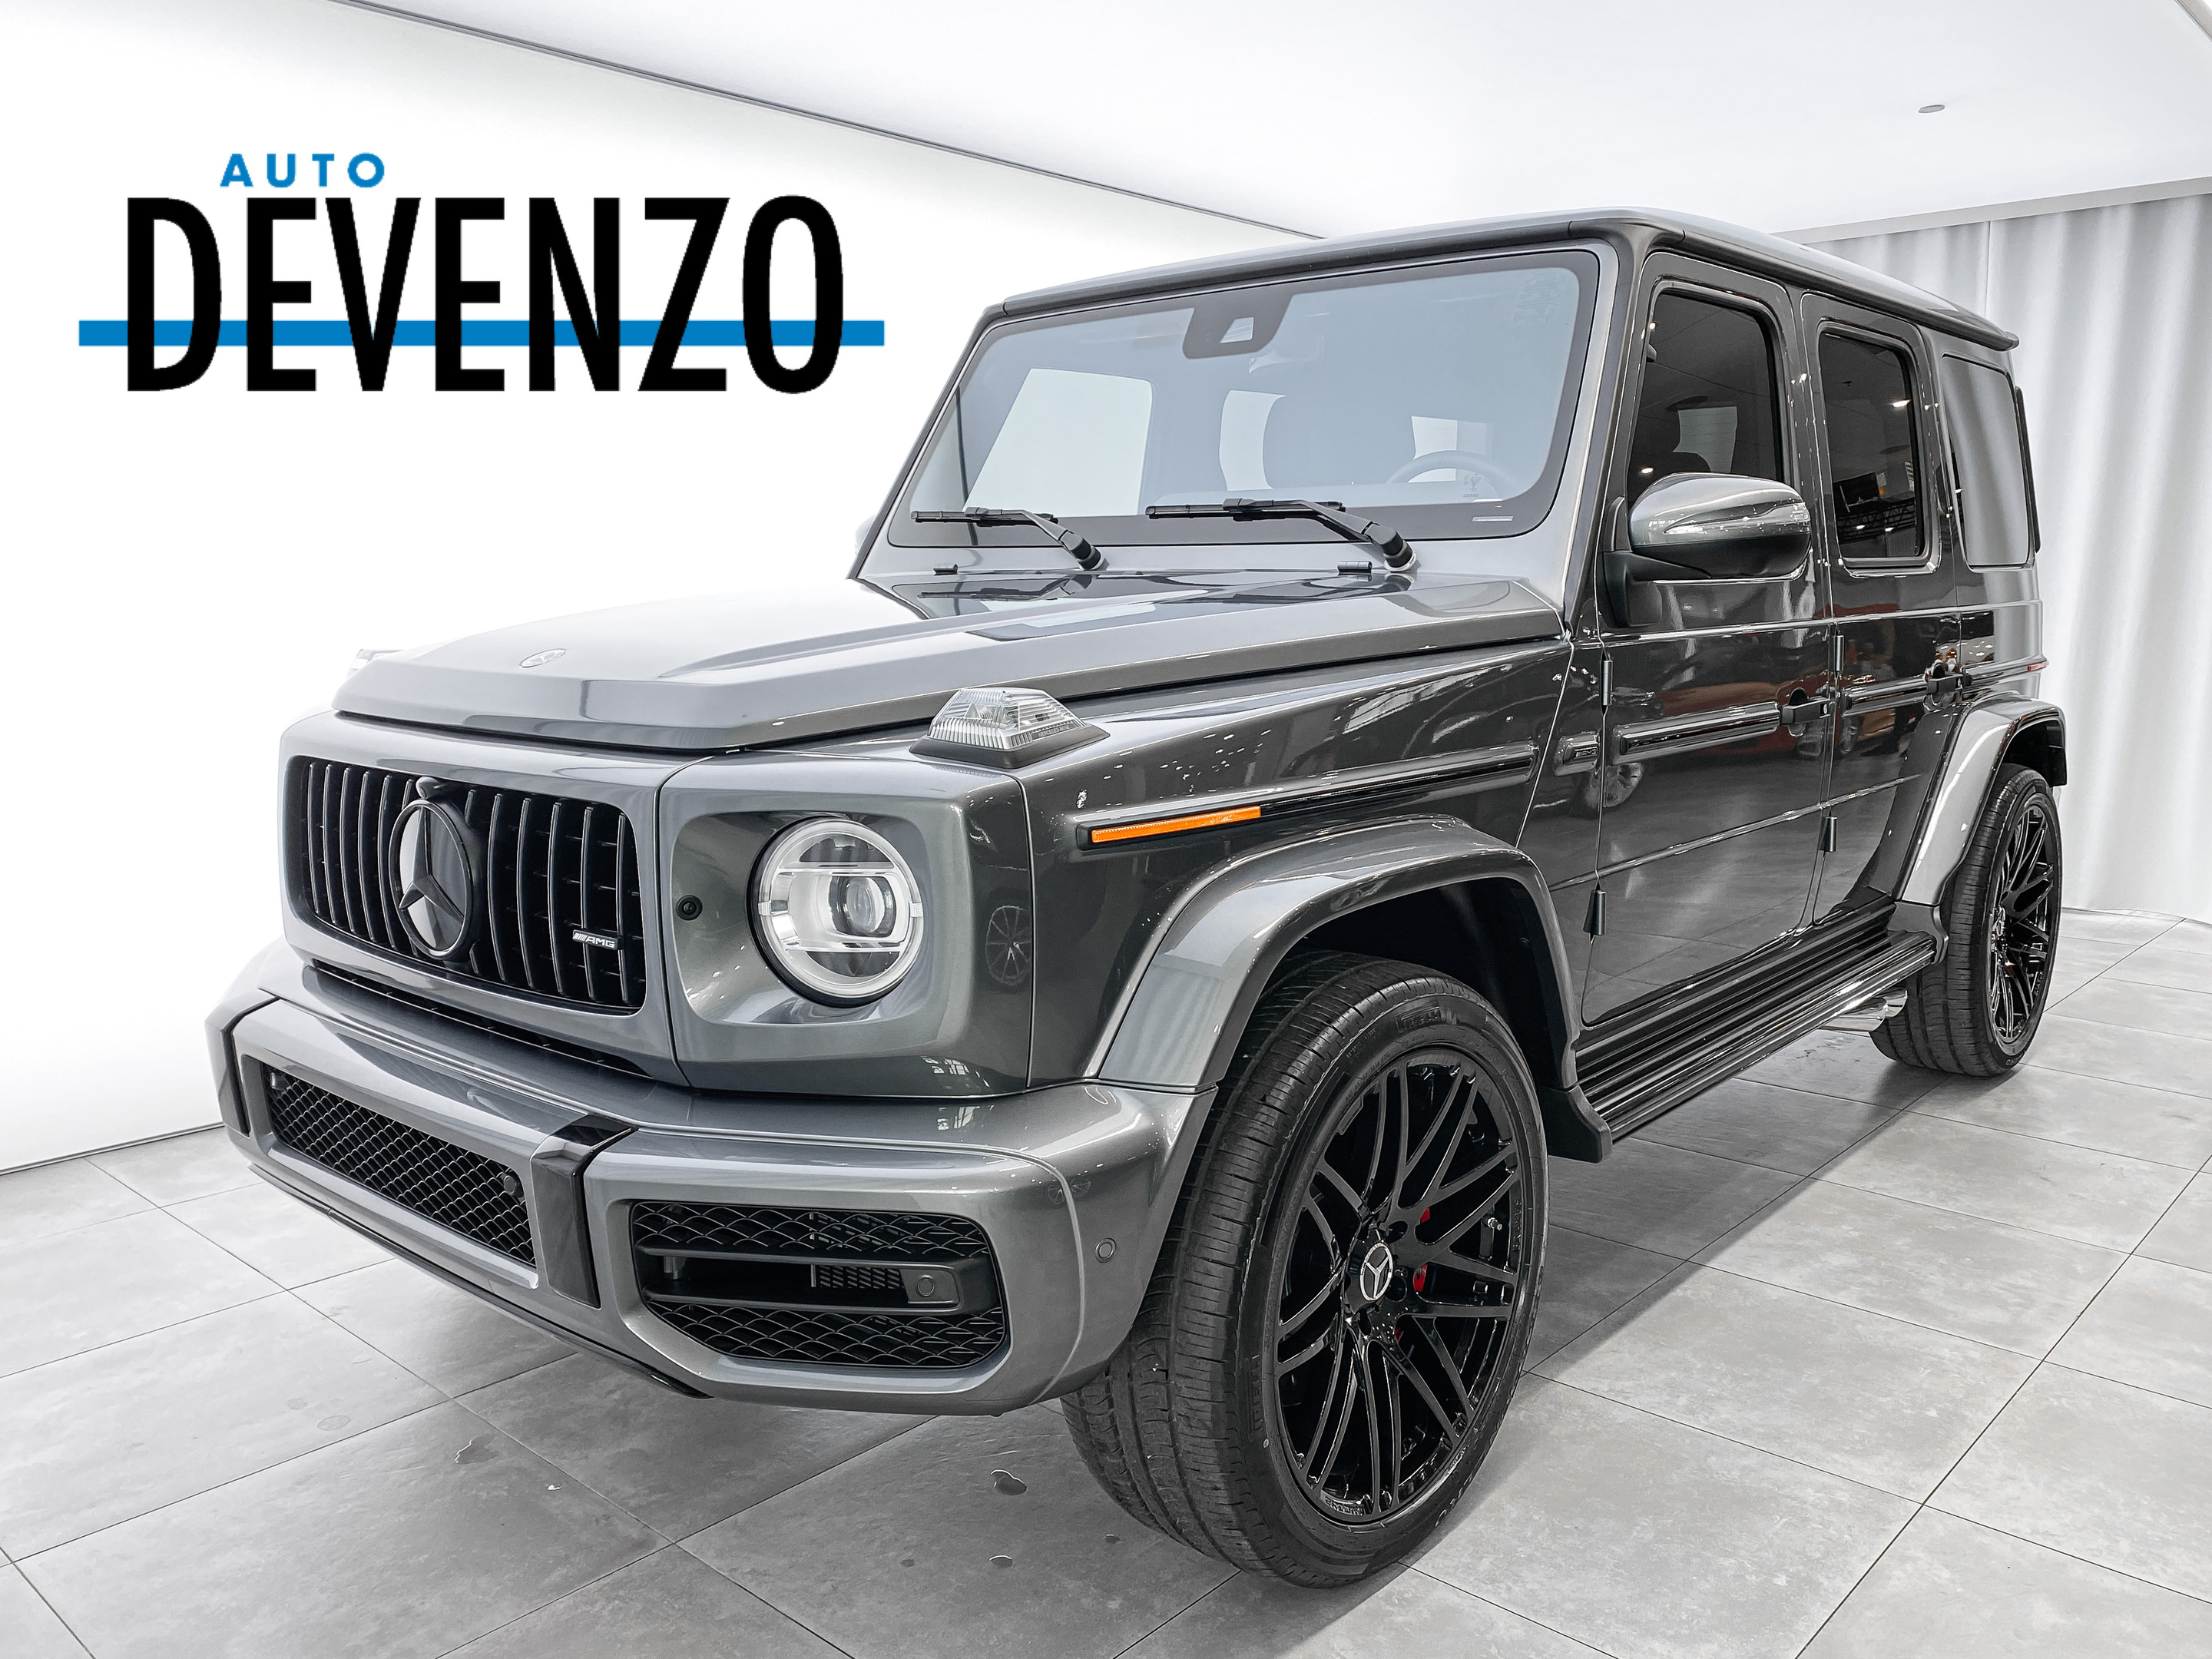 2021 Mercedes-Benz G-Class AMG G63 4MATIC SUV complet